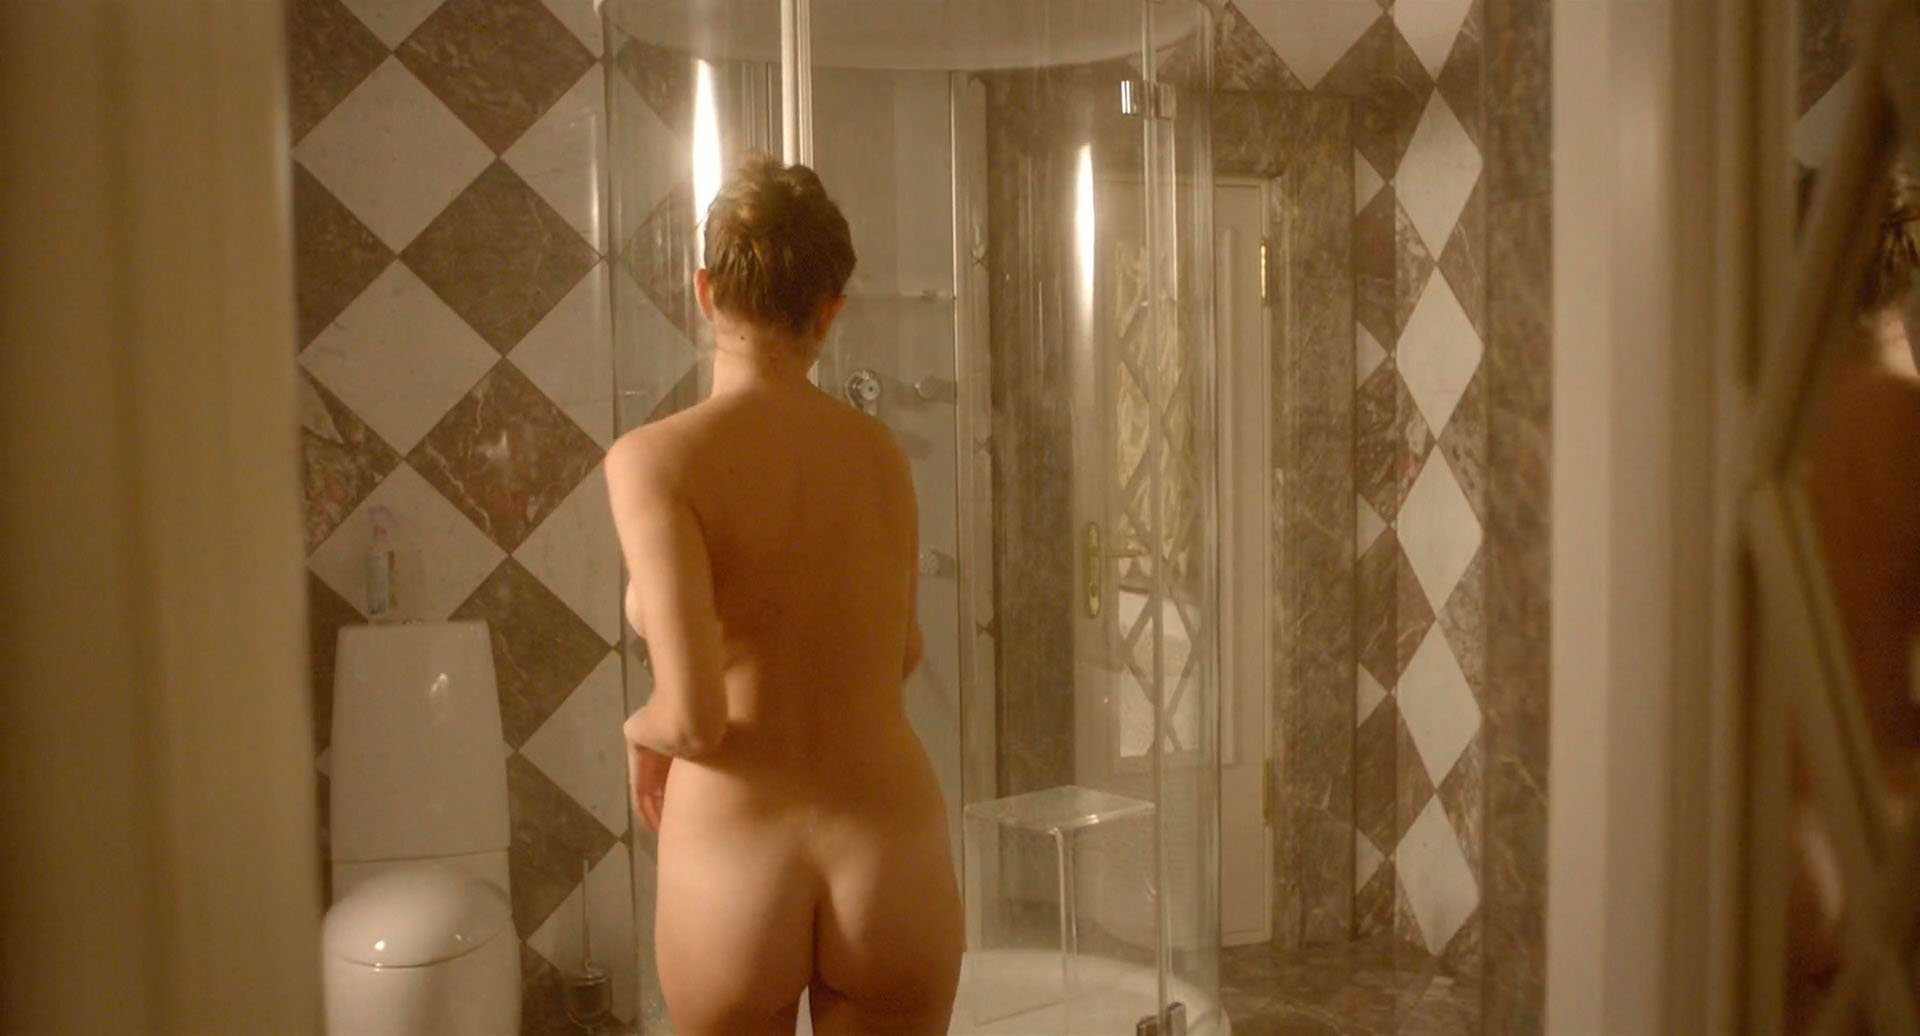 nudity in movie scenes